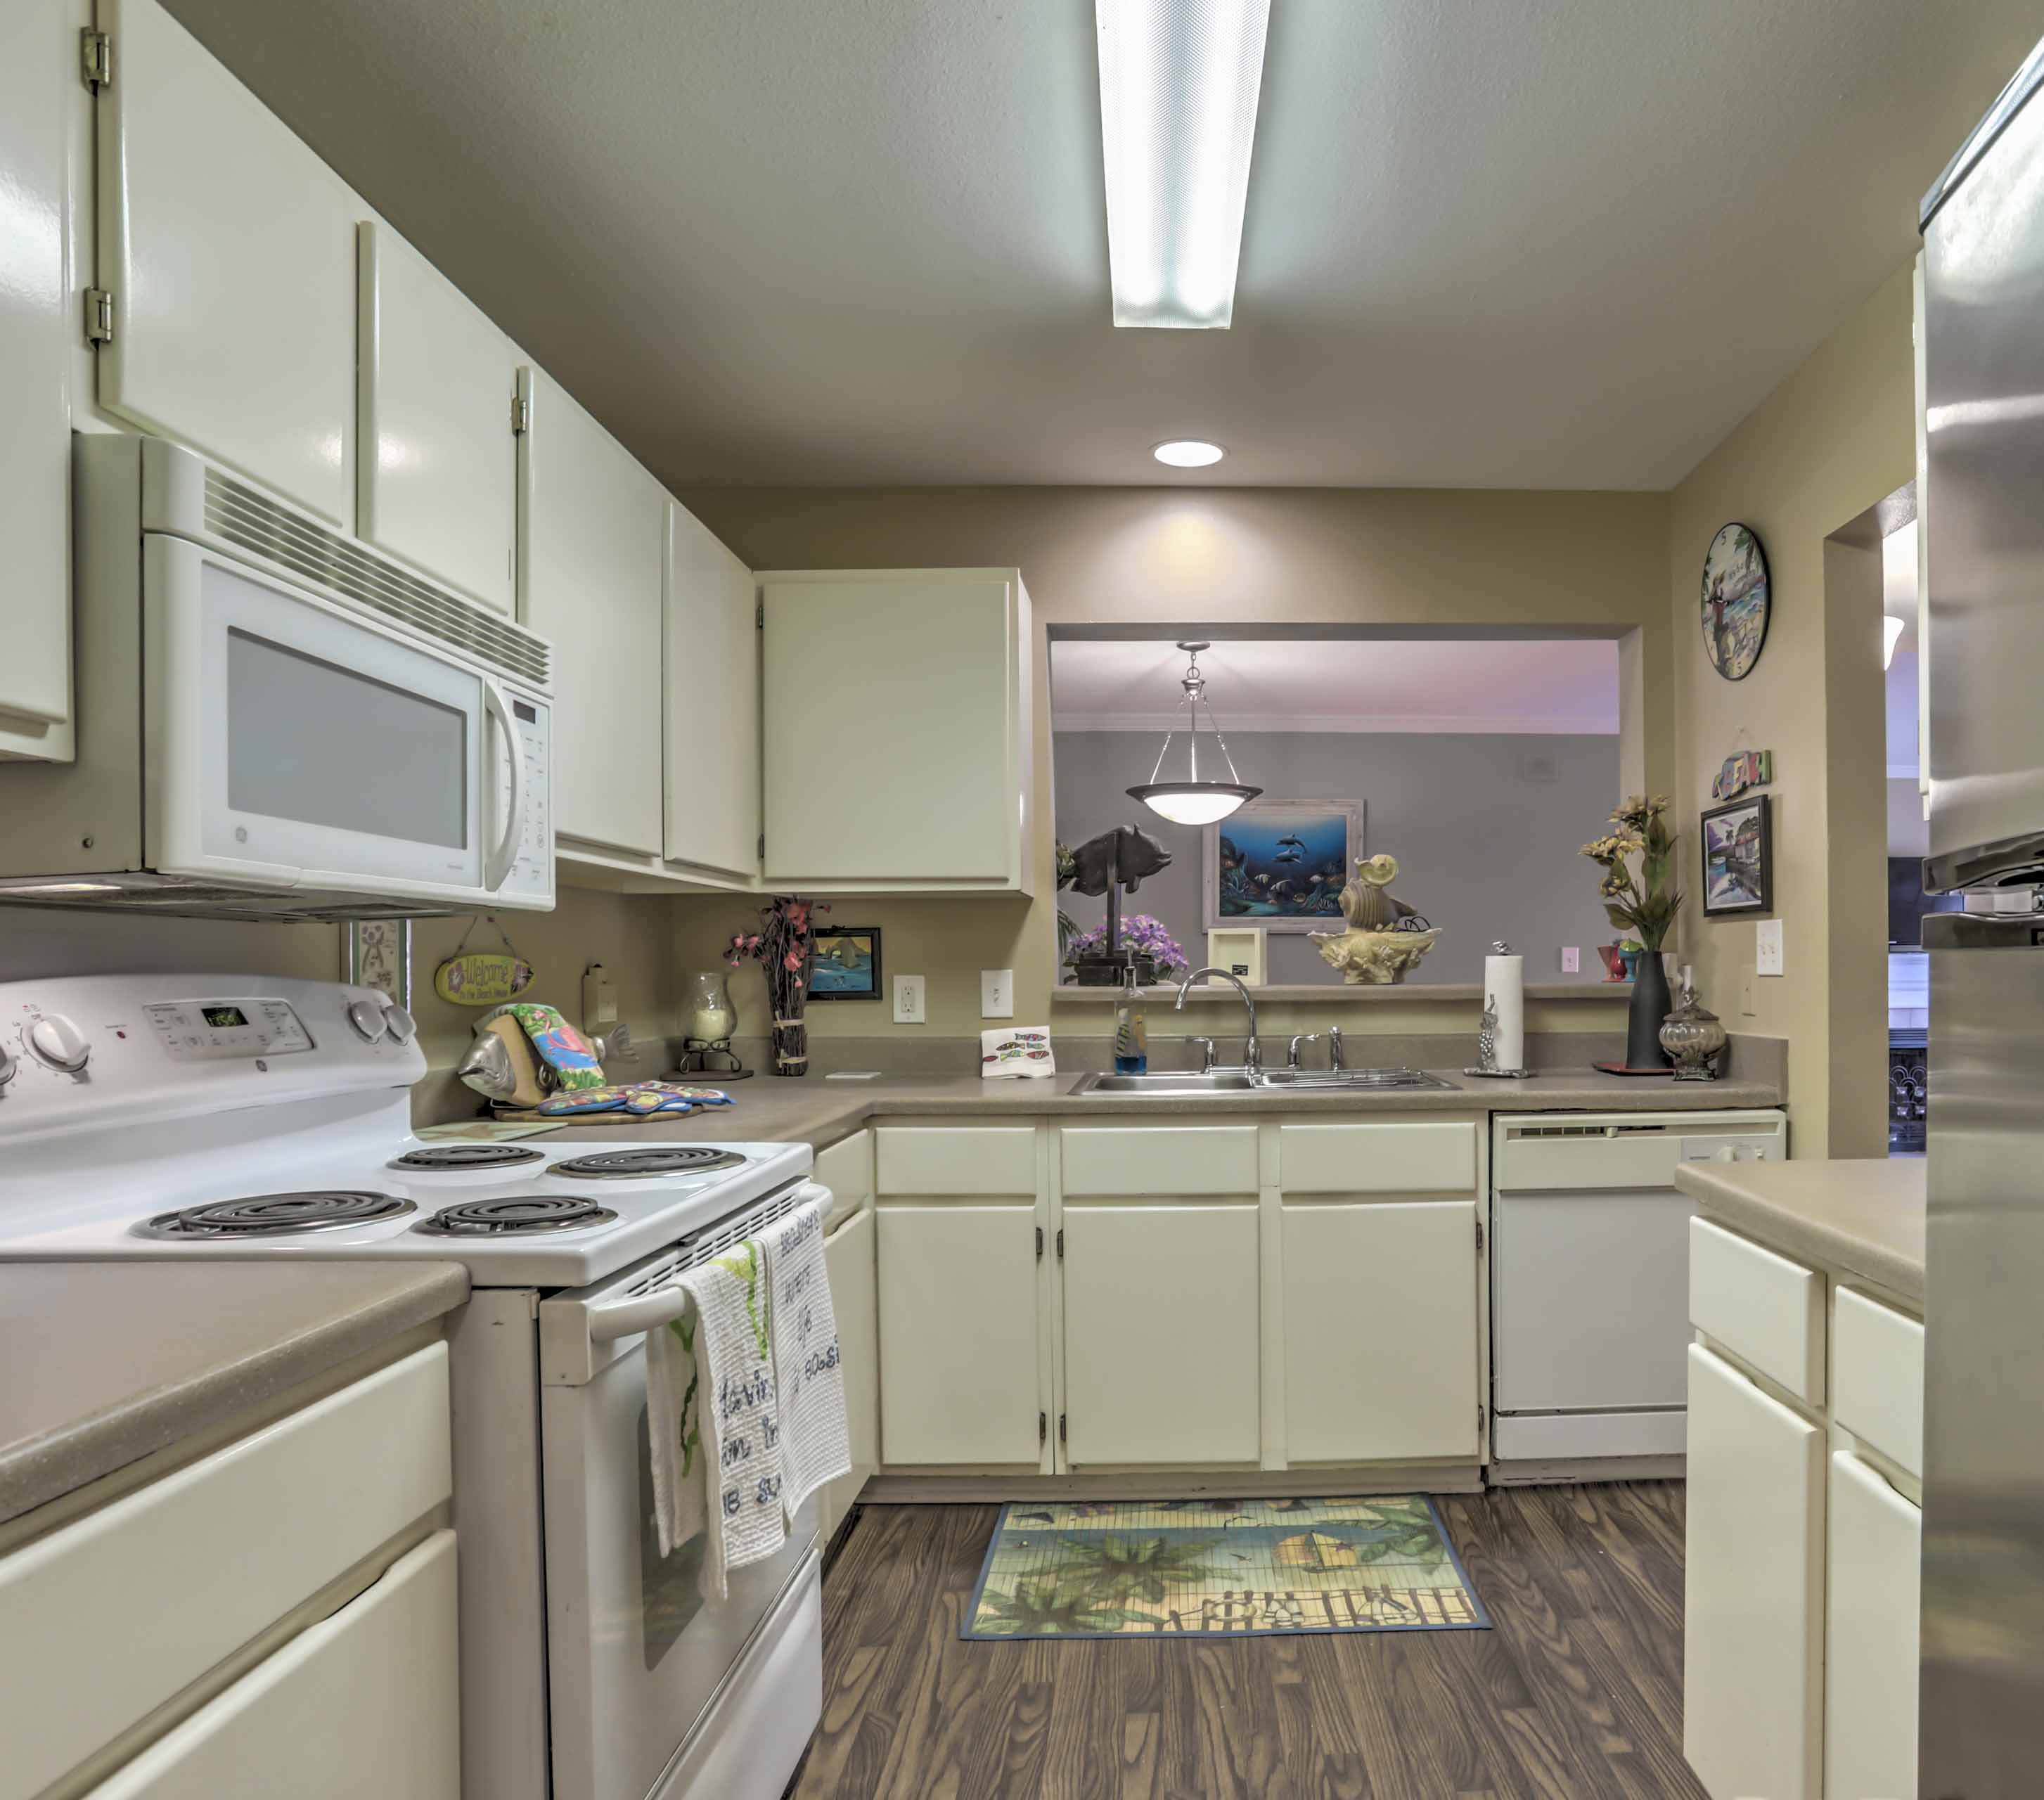 The fully equipped kitchen makes it easy to prepare meals during your stay.